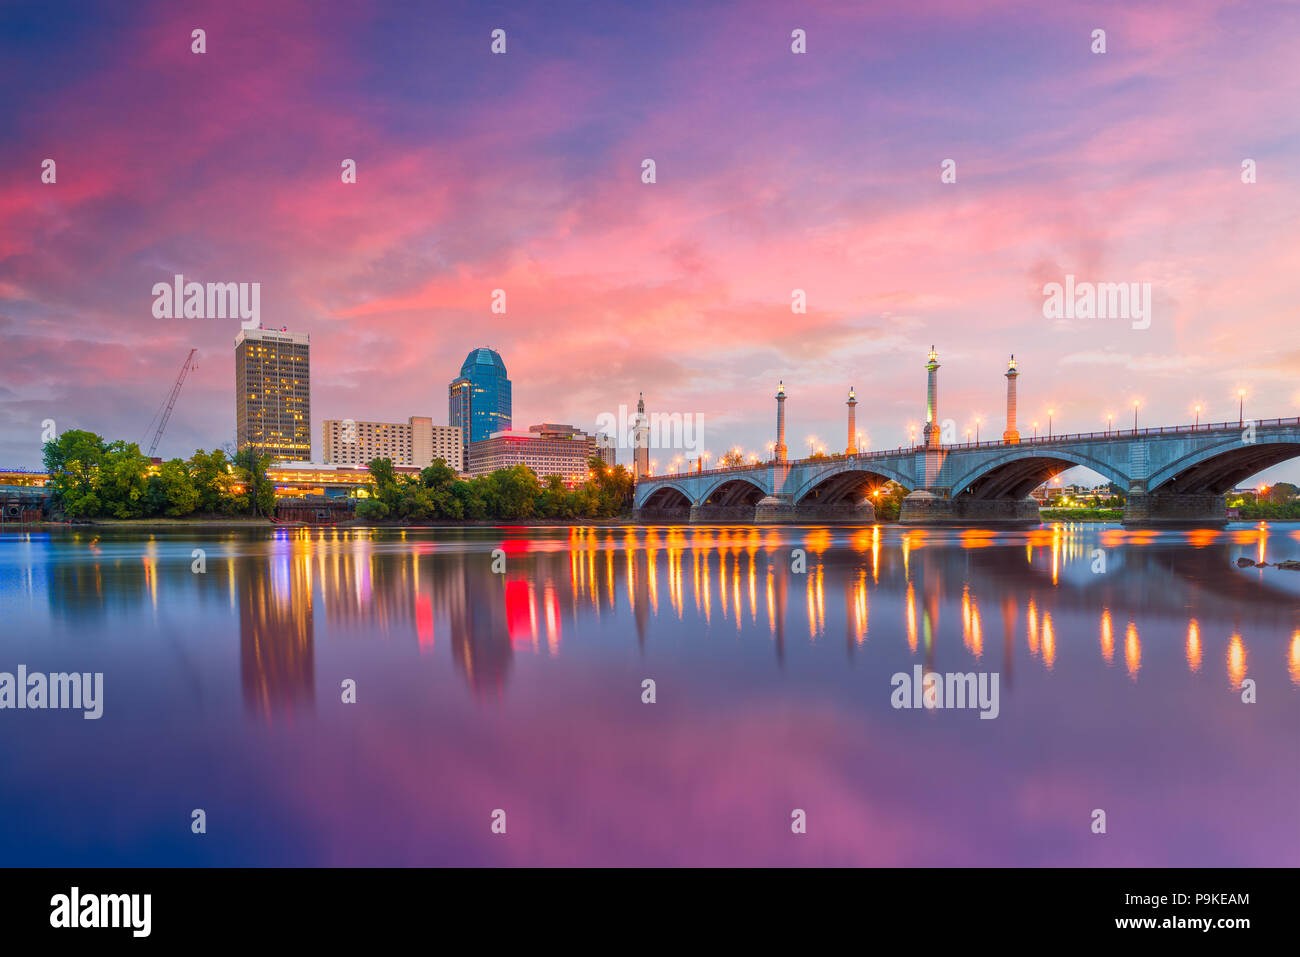 Springfield, Massachusetts, USA downtown skyline on the river at dusk. - Stock Image